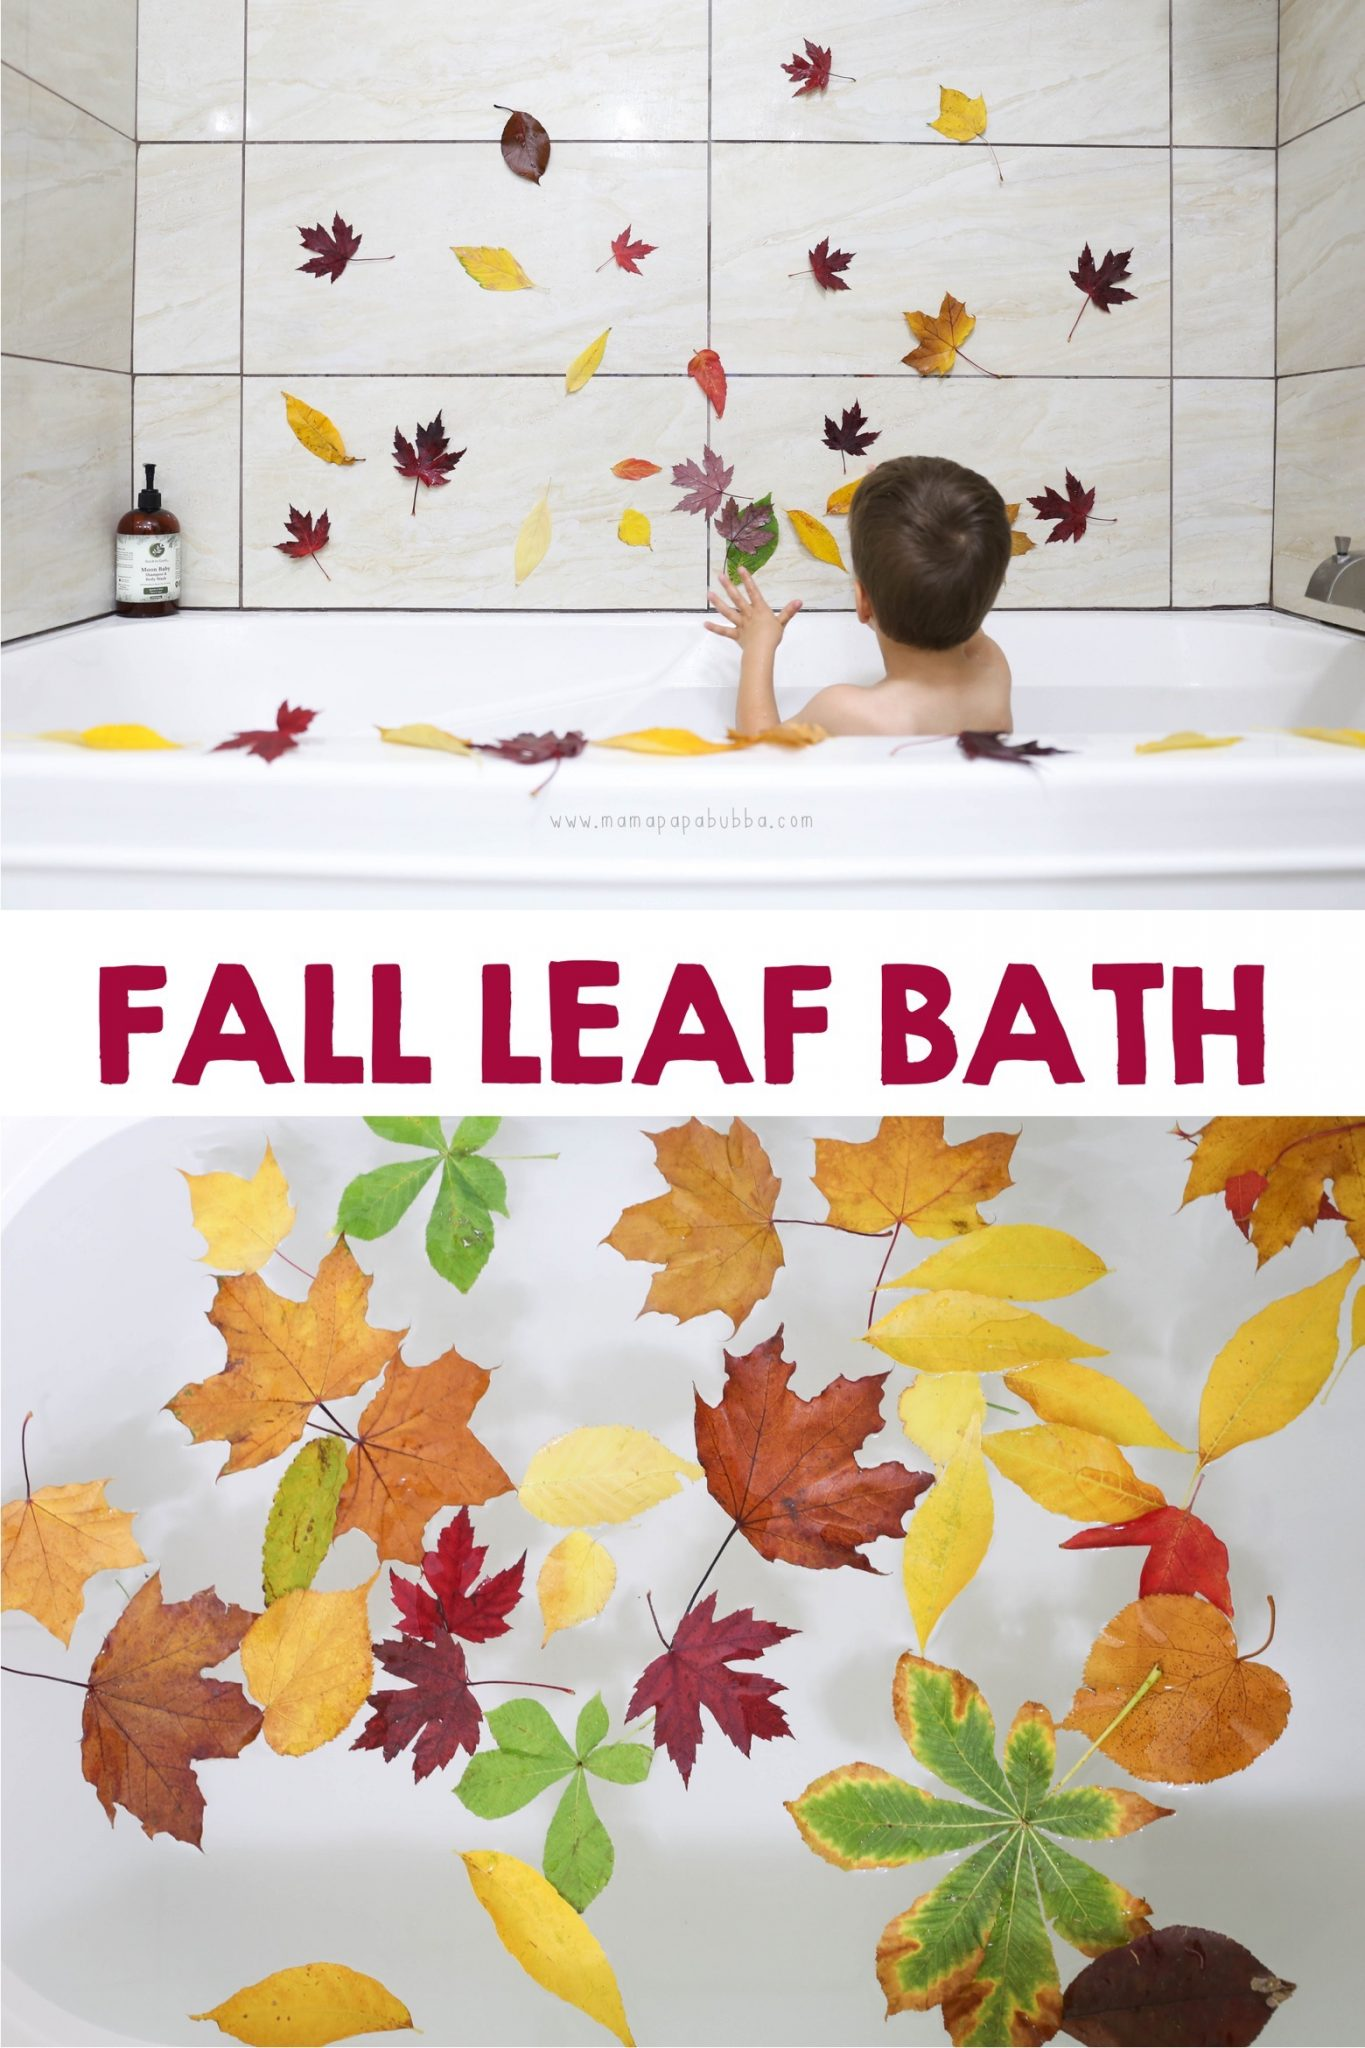 Autumn Leaf Bath | Mama Papa Bubba